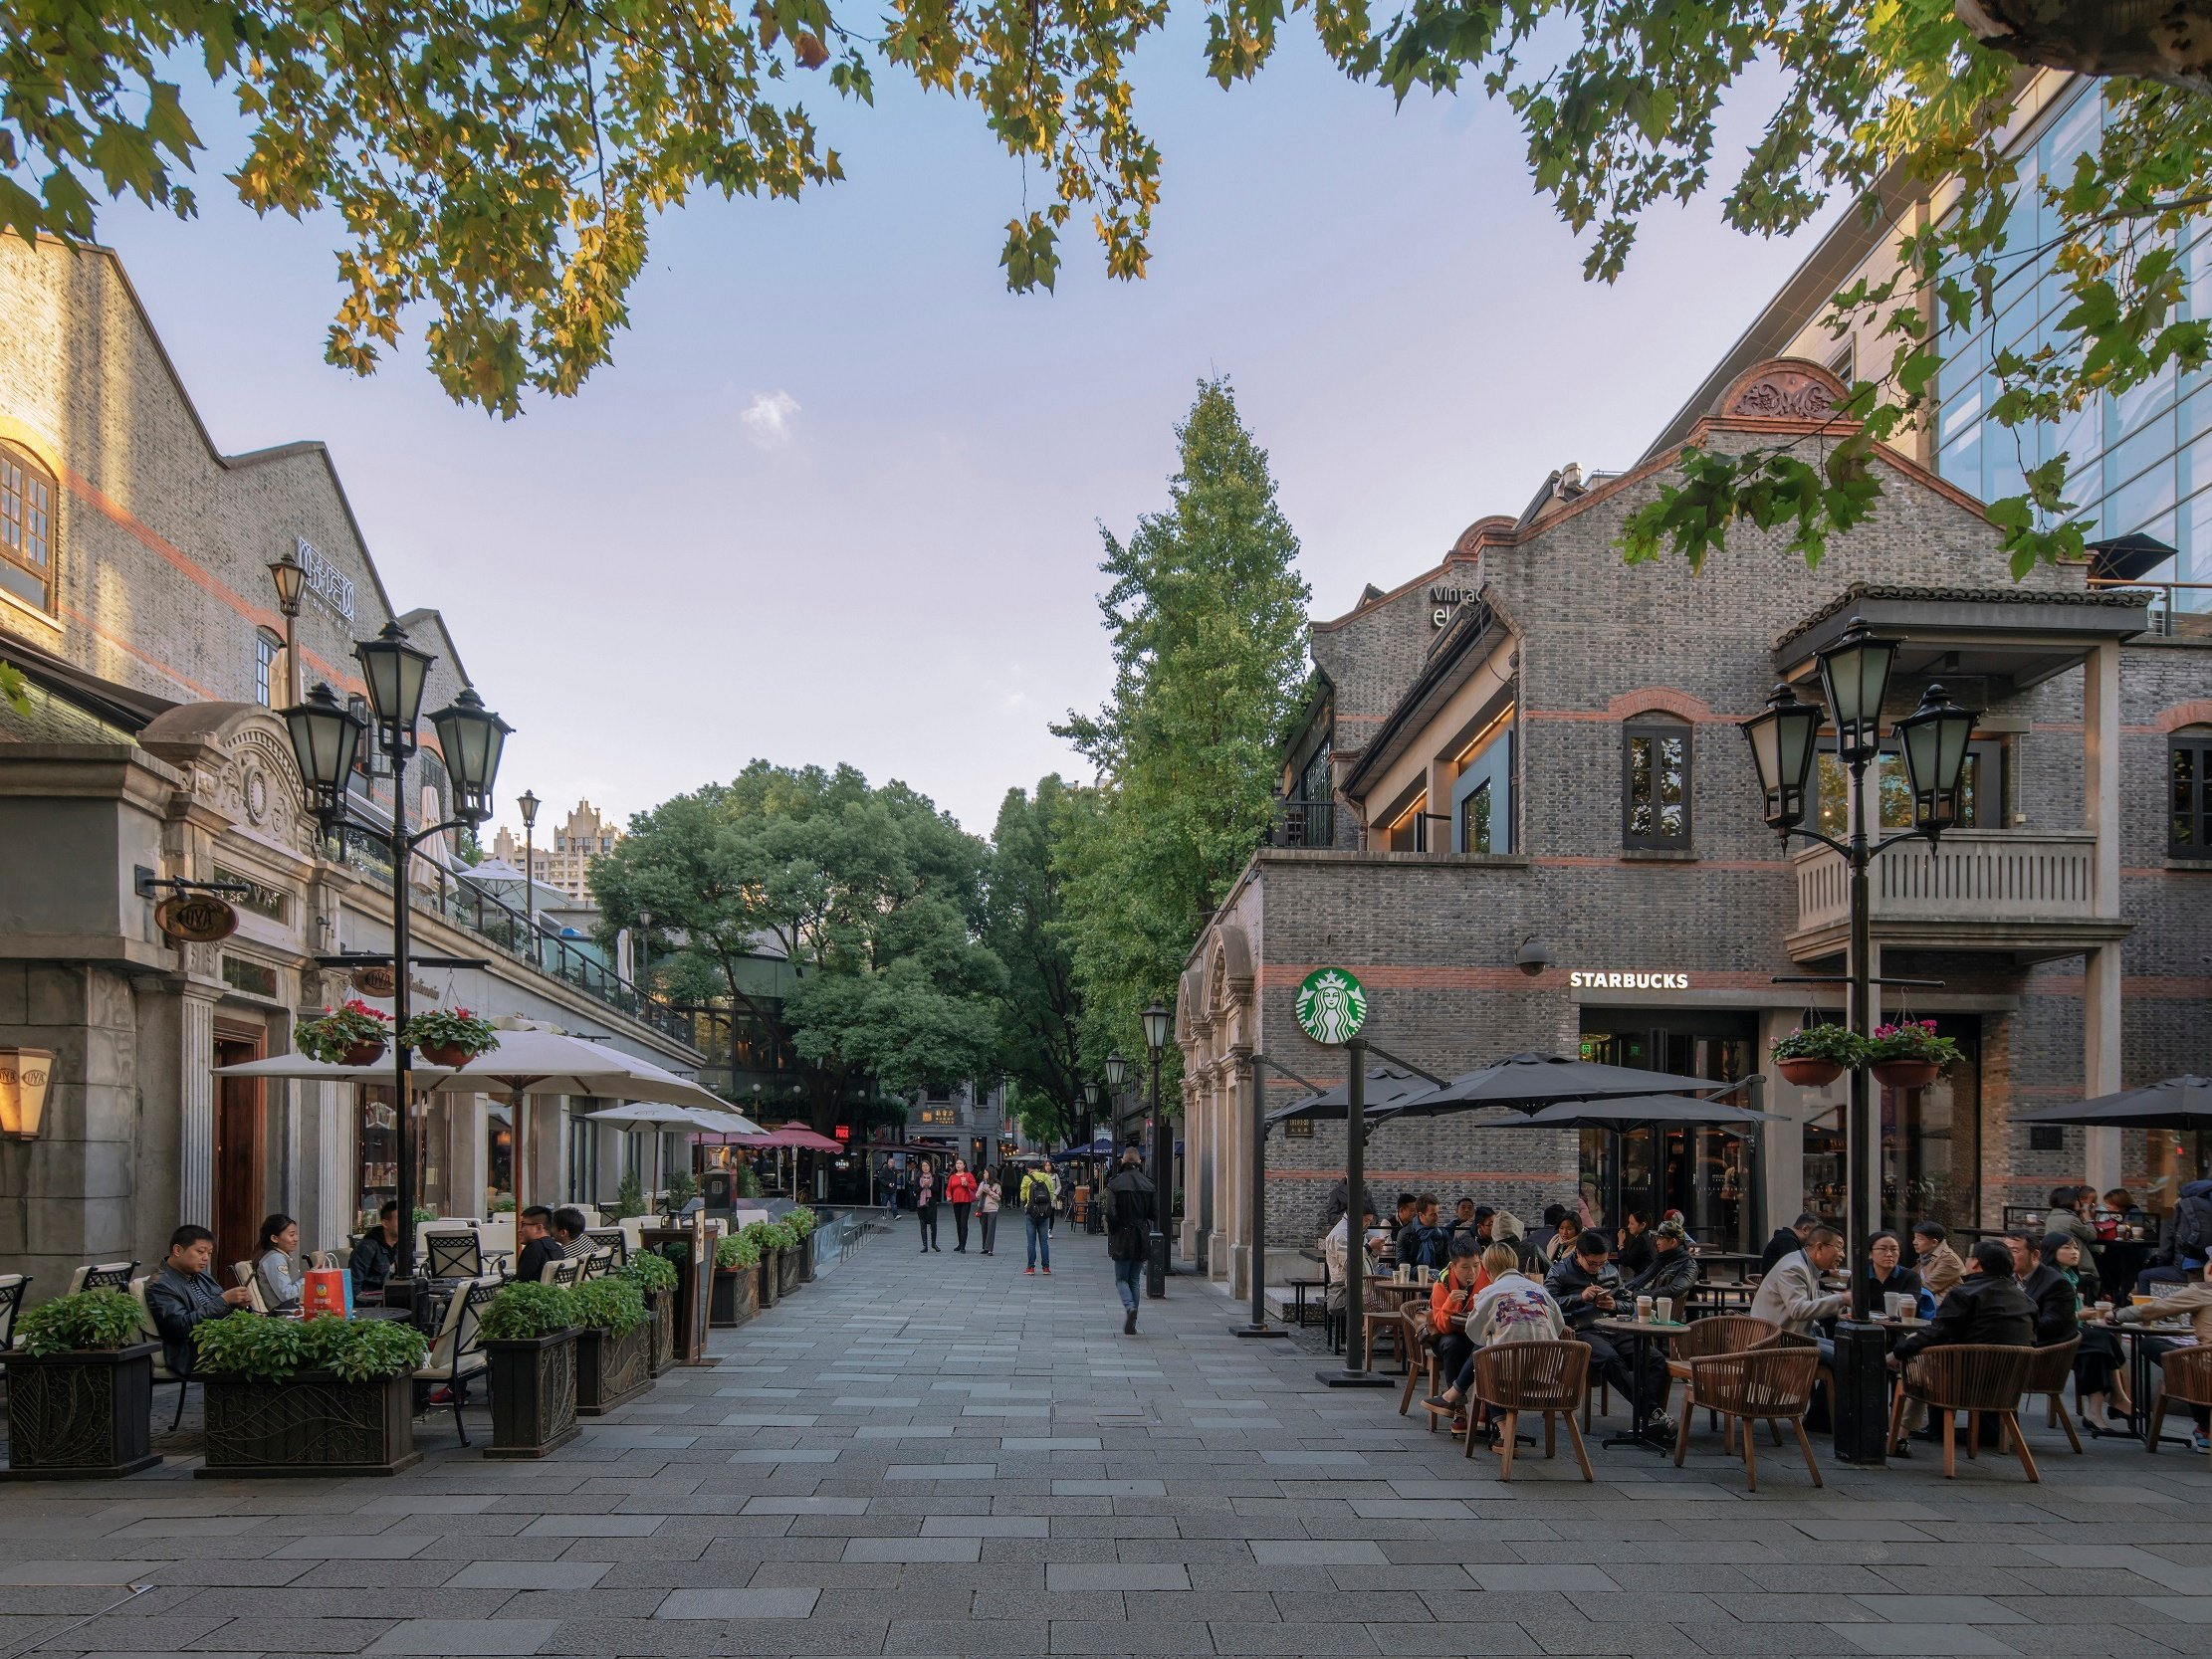 Big-name brands and traditional Shikumen architecture align in Xintiandi's attractive pedestrianized setting.